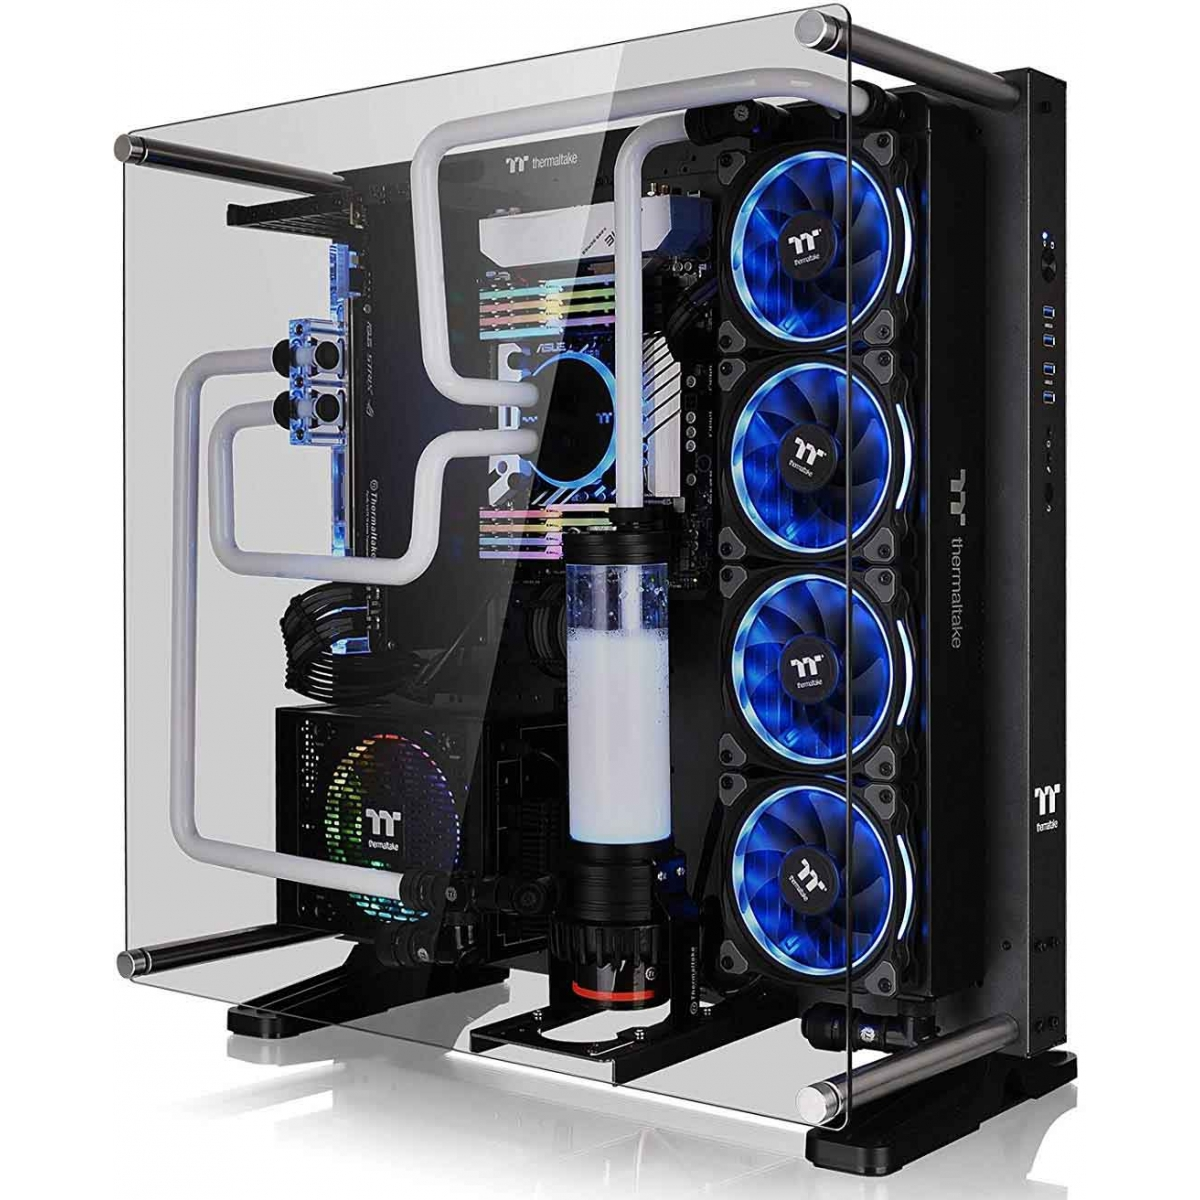 Gabinete Gamer Thermaltake Core P5 TG Titanium Edition, Mid Tower, Vidro Temperado, Black, Sem Fonte, CA-1E7-00M9WN-00